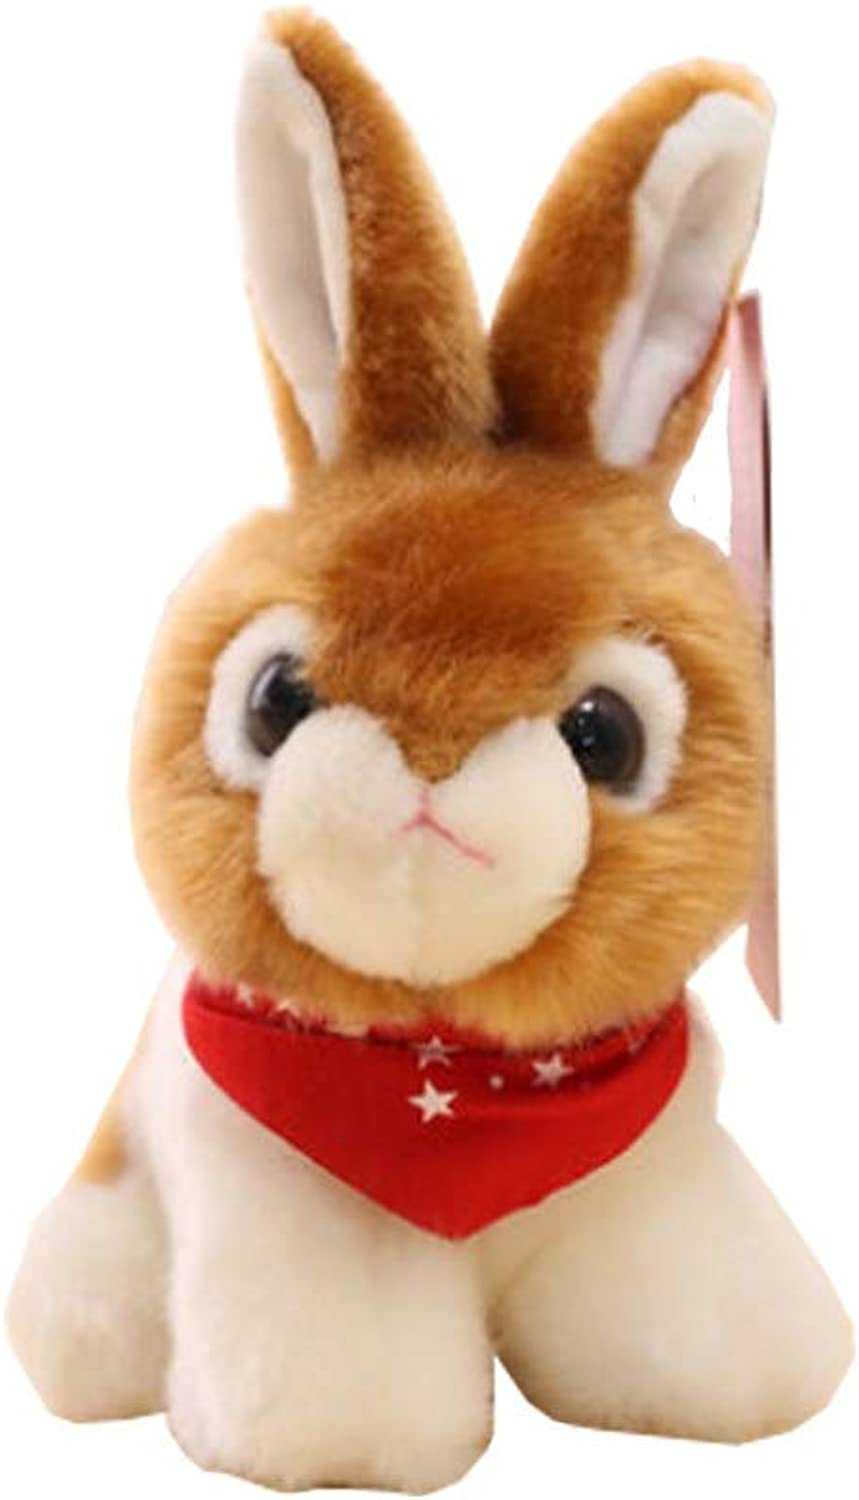 Shengshihuizhong Plush Toys, The Latest Puppy, Super Cute White Rabbit, Plush Simulation Rabbit, Small Animal Toy Latest Models (color   Brown, Size   11 incheswith Cushion)